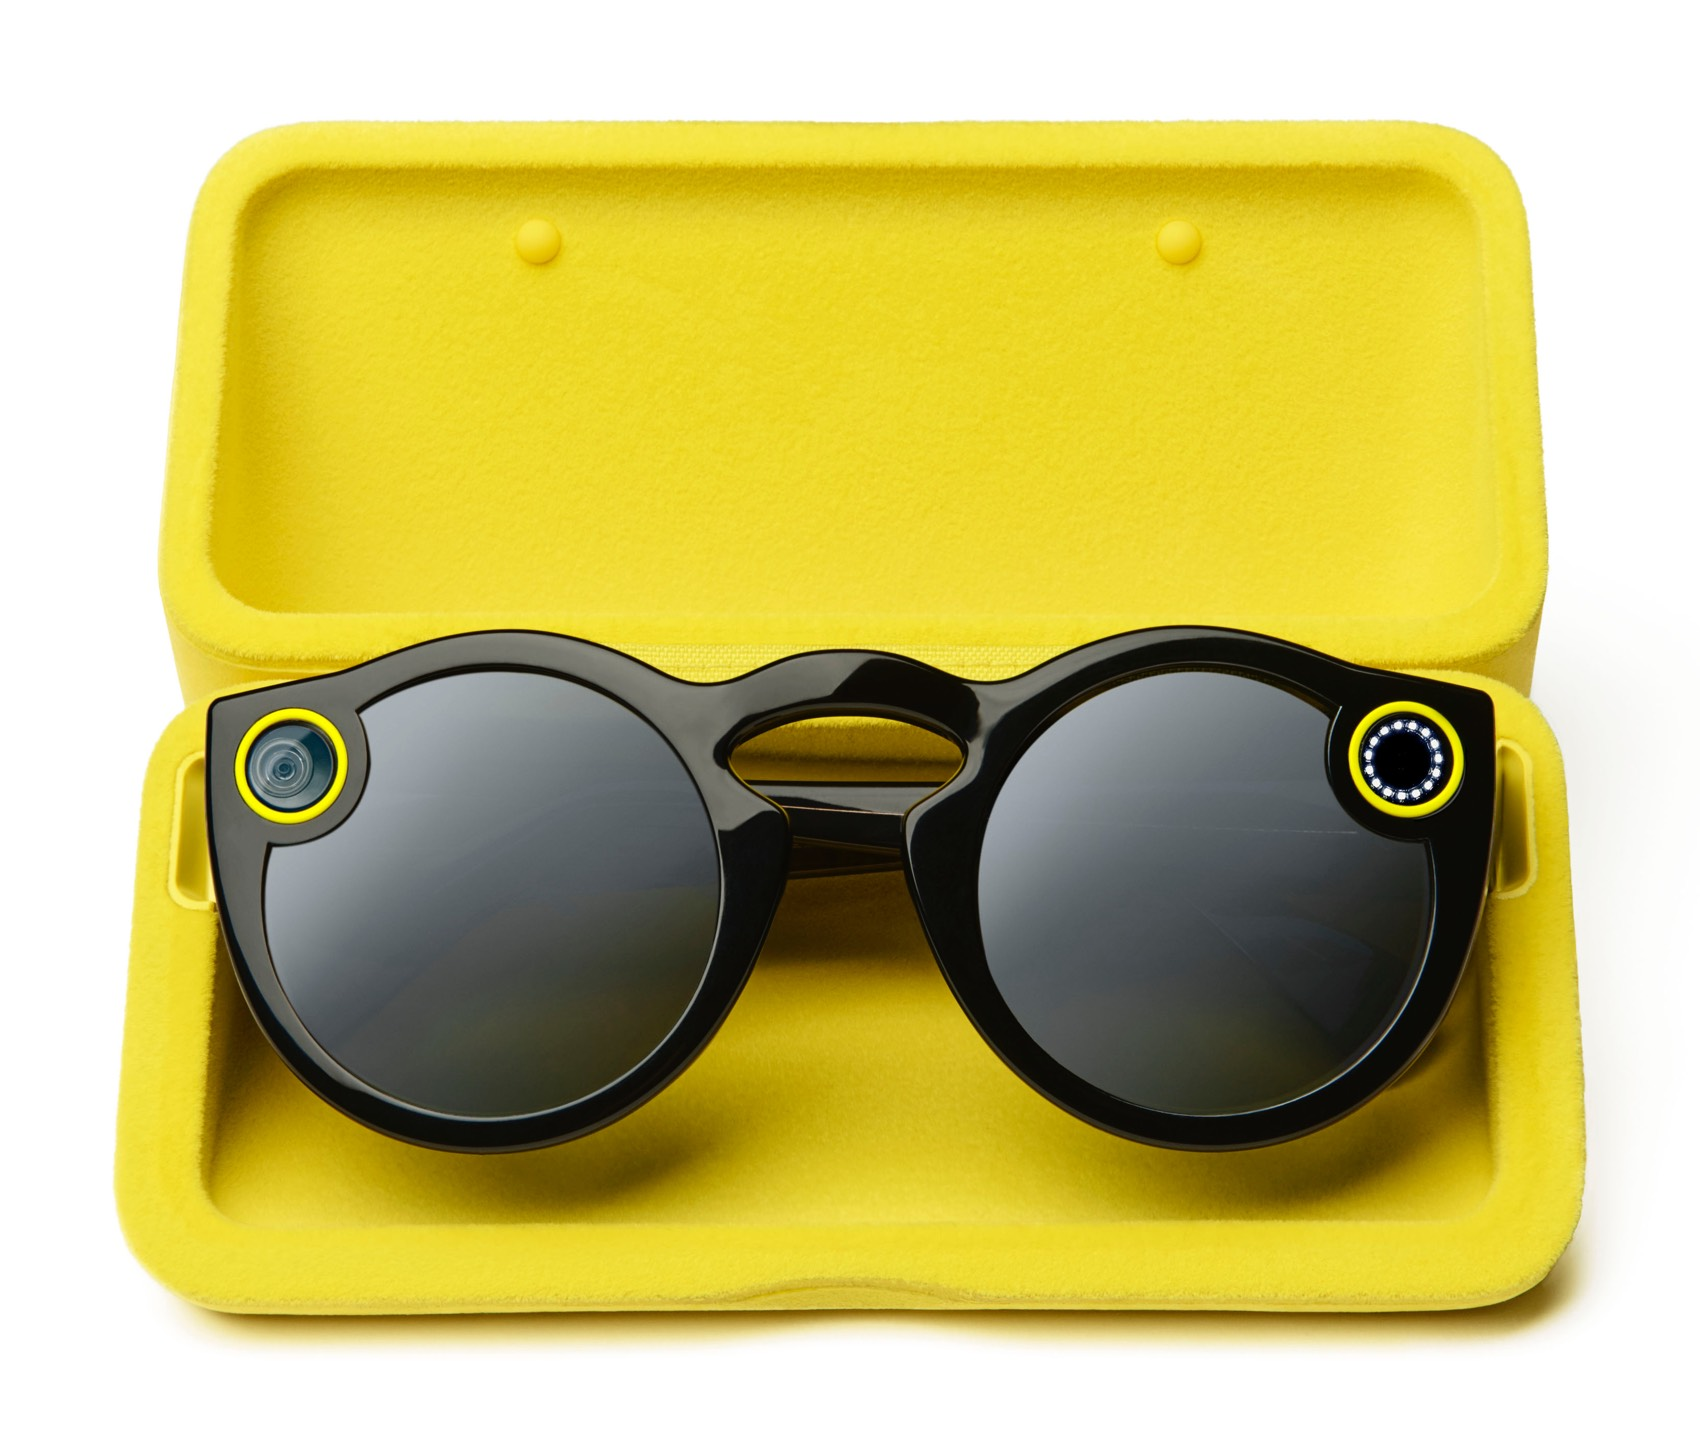 Snap Sunglasses - Today we are finding that Snapchat multimedia in the form of photos and video clips are being held in a third location that can be easily overlooked! Have you heard of Snap Spectacles? Well if you haven't, they look like any regular sunglasses but can hold up to 4 GB in storage, up to 150 videos or 3,000 photos.